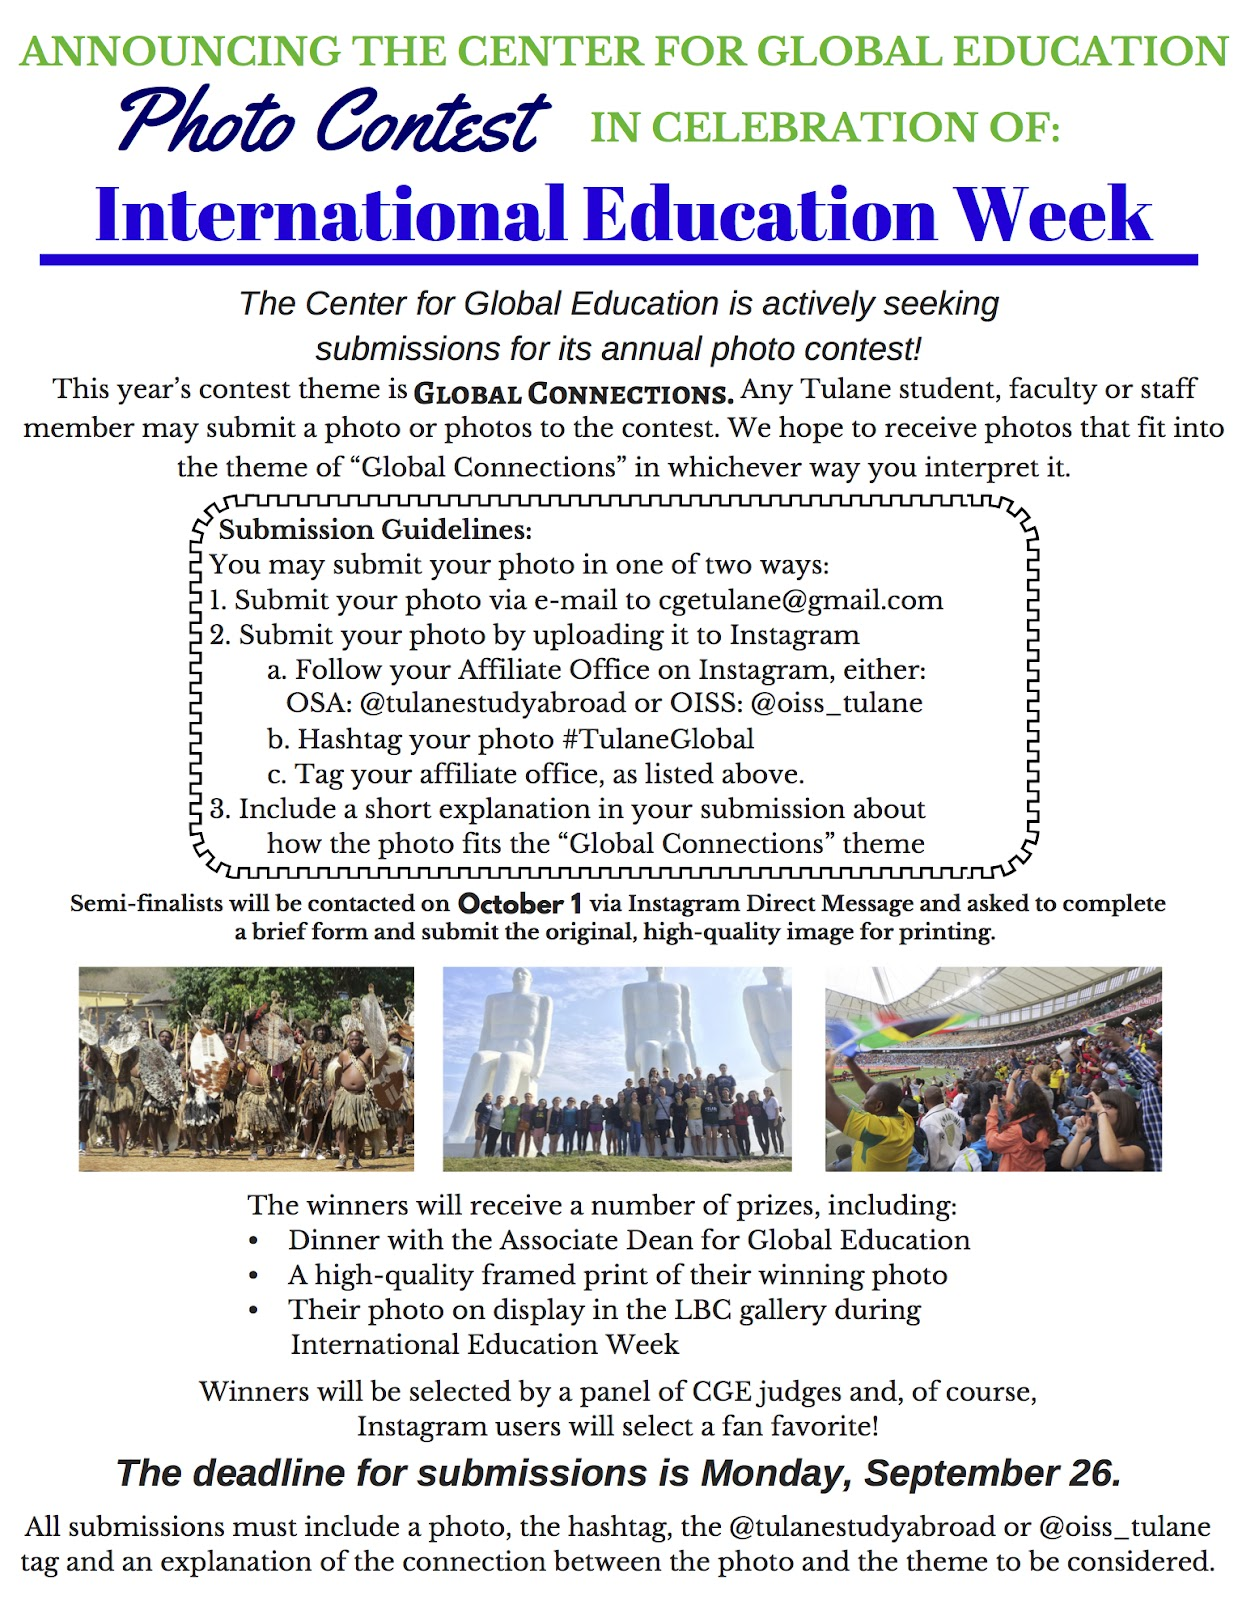 IEW Photo Contest Informational Flyer (2).jpg